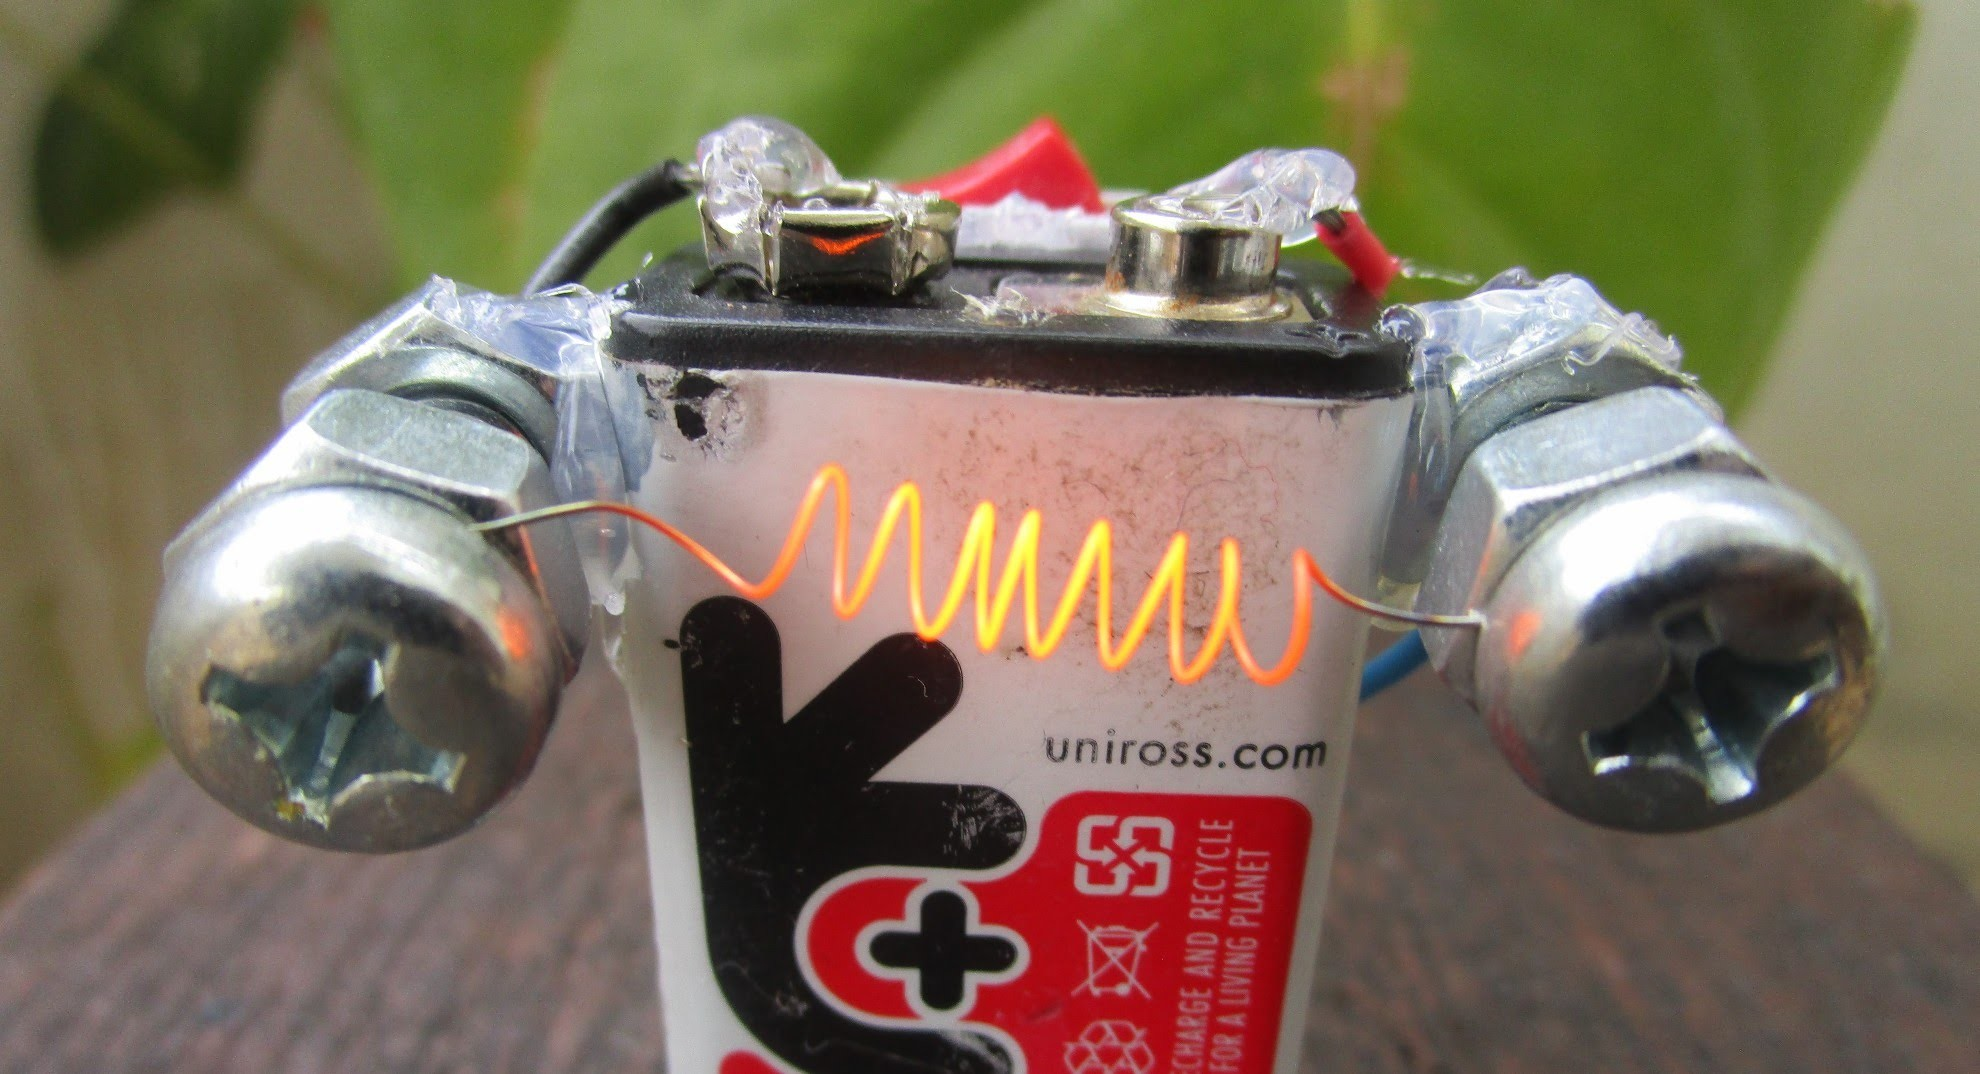 How to Make an Electric Hot Wire Lighter - Awesome Ideas